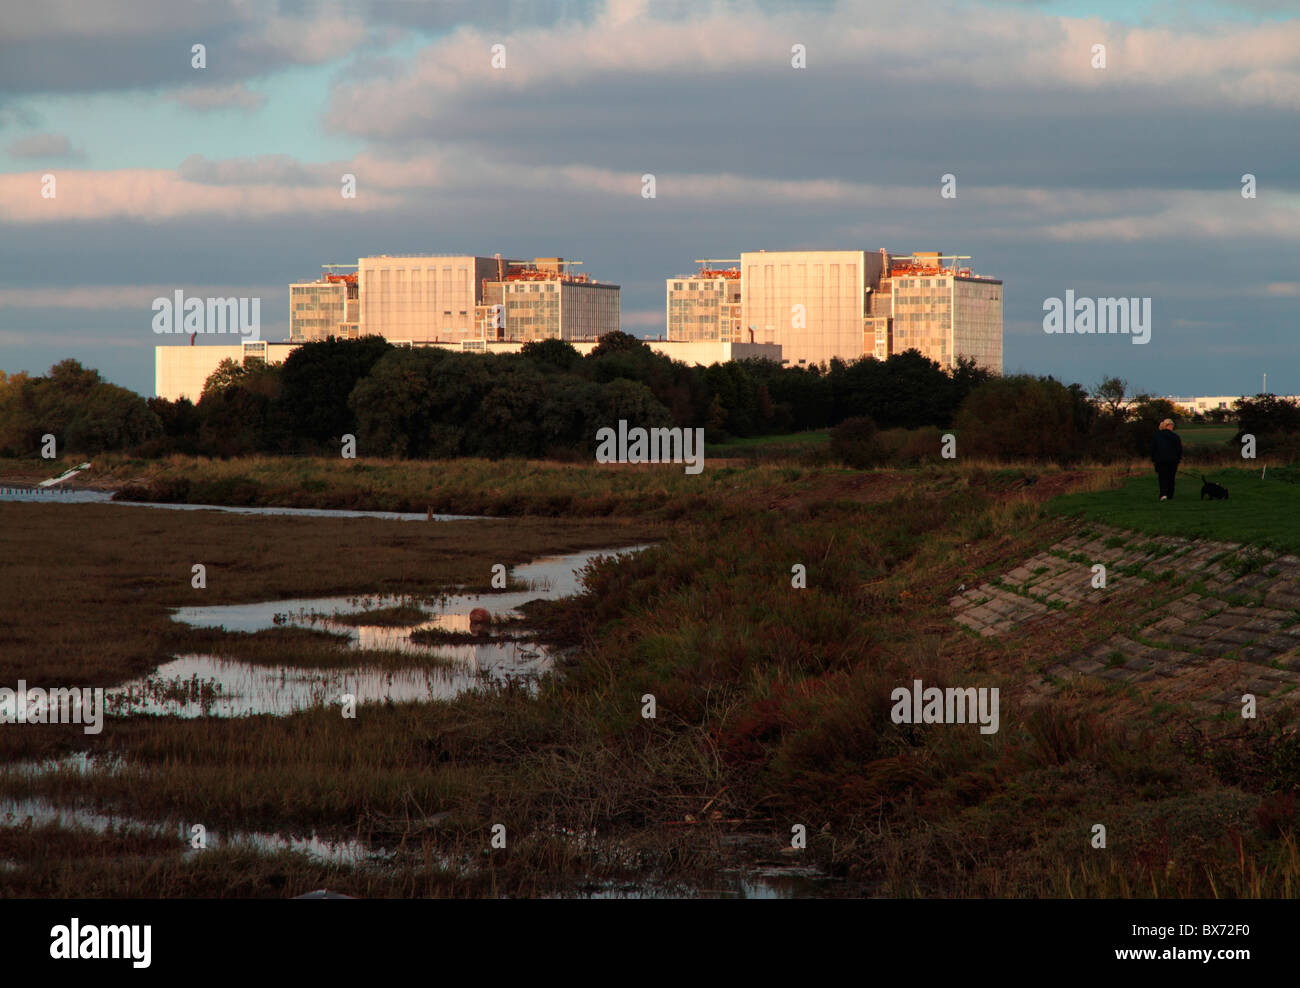 Bradwell nuclear power station located on the Dengie peninsula at the mouth of the River Blackwater in Essex England. - Stock Image